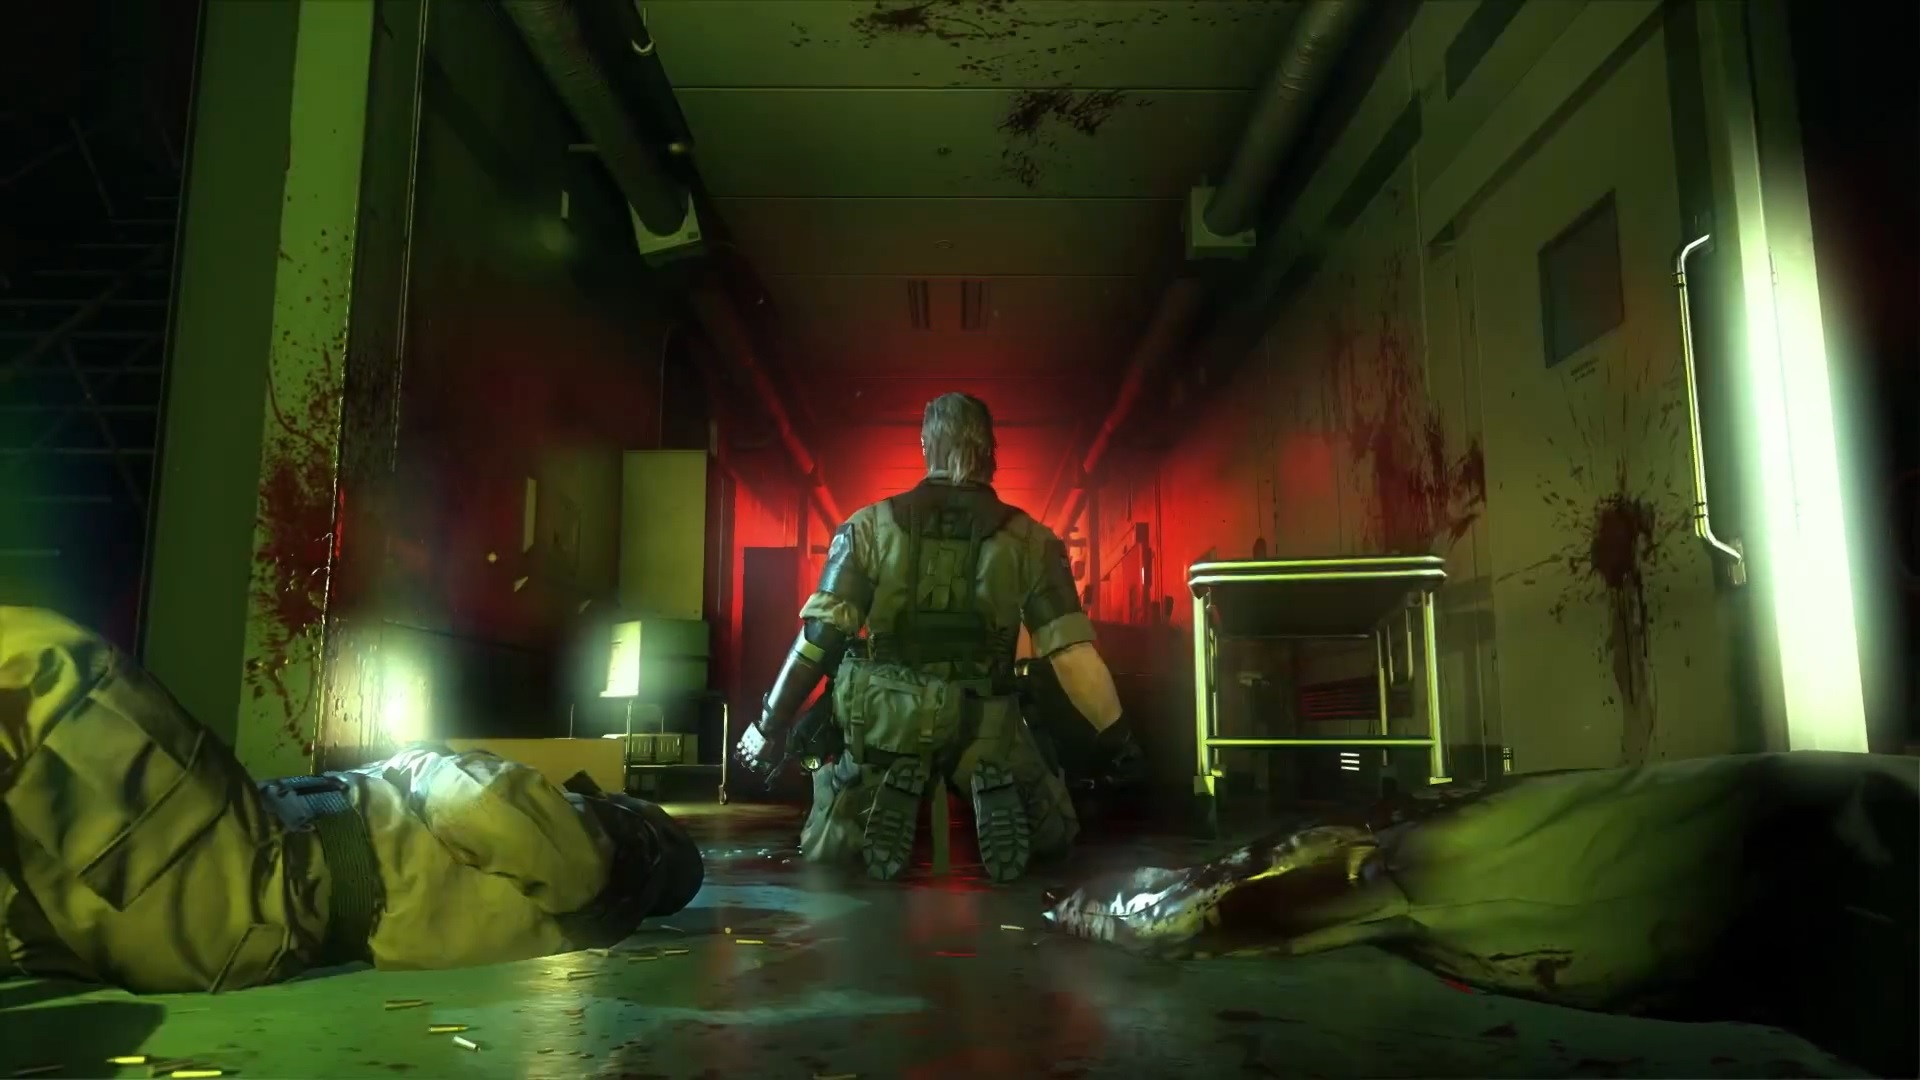 Metal Gear Solid V The Phantom Pain S E3 Trailer Is As Barmy As